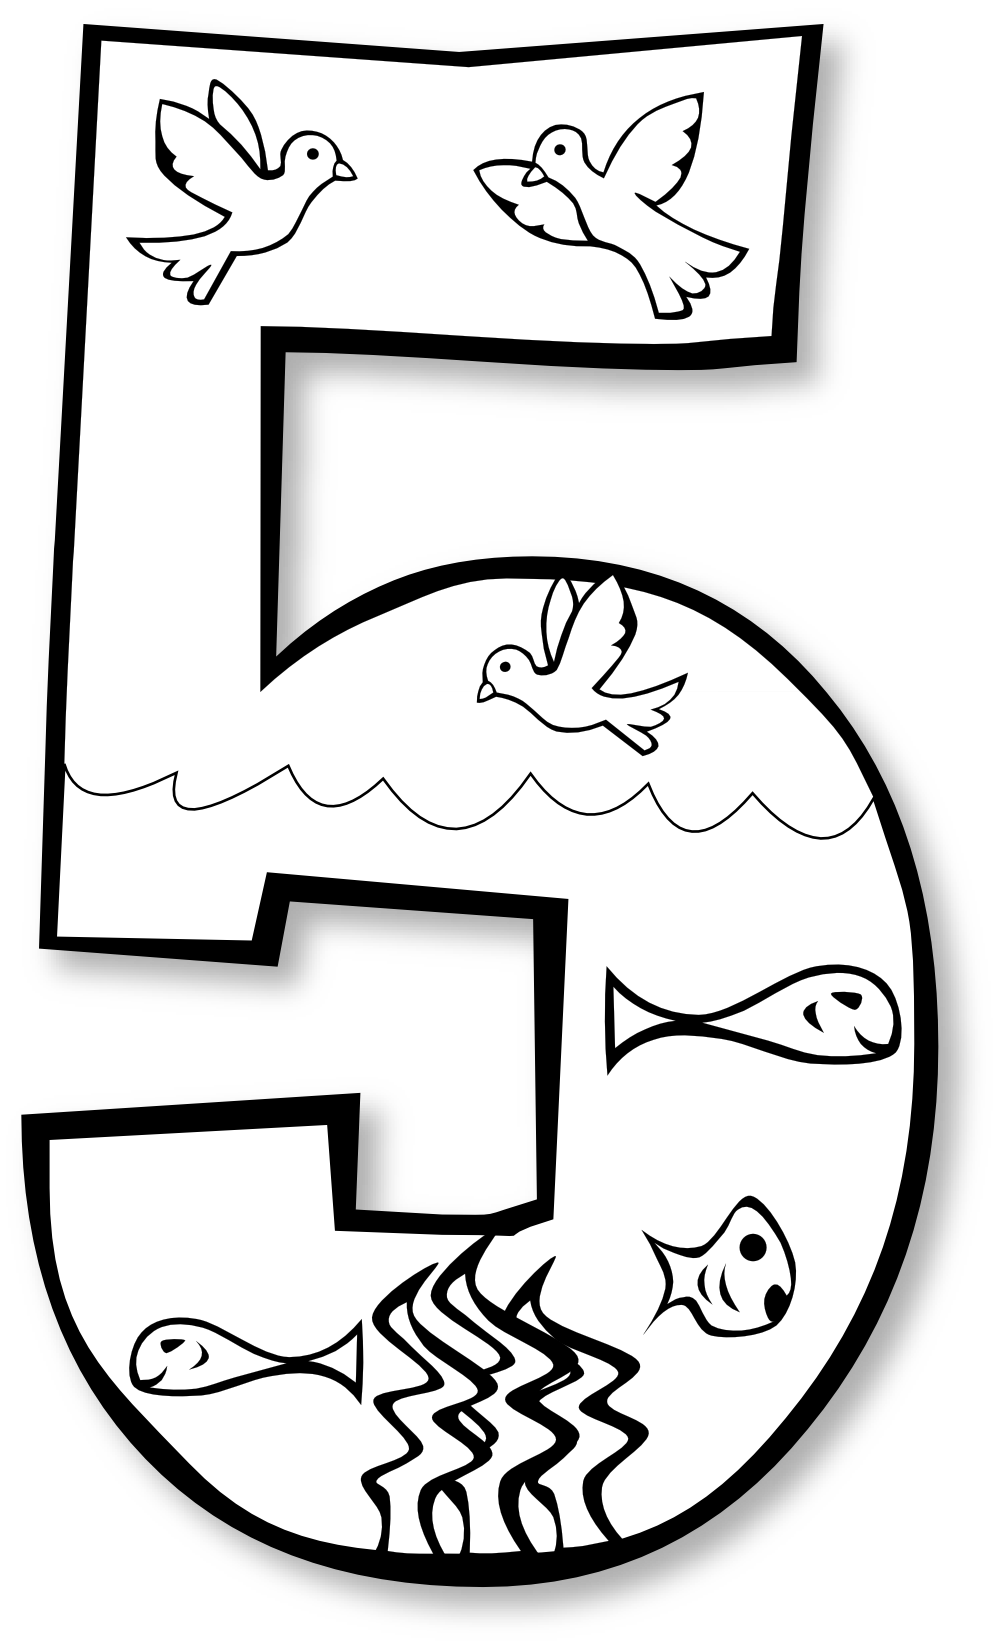 svg royalty free stock Sunday school clipart black and white. Cool creation day number